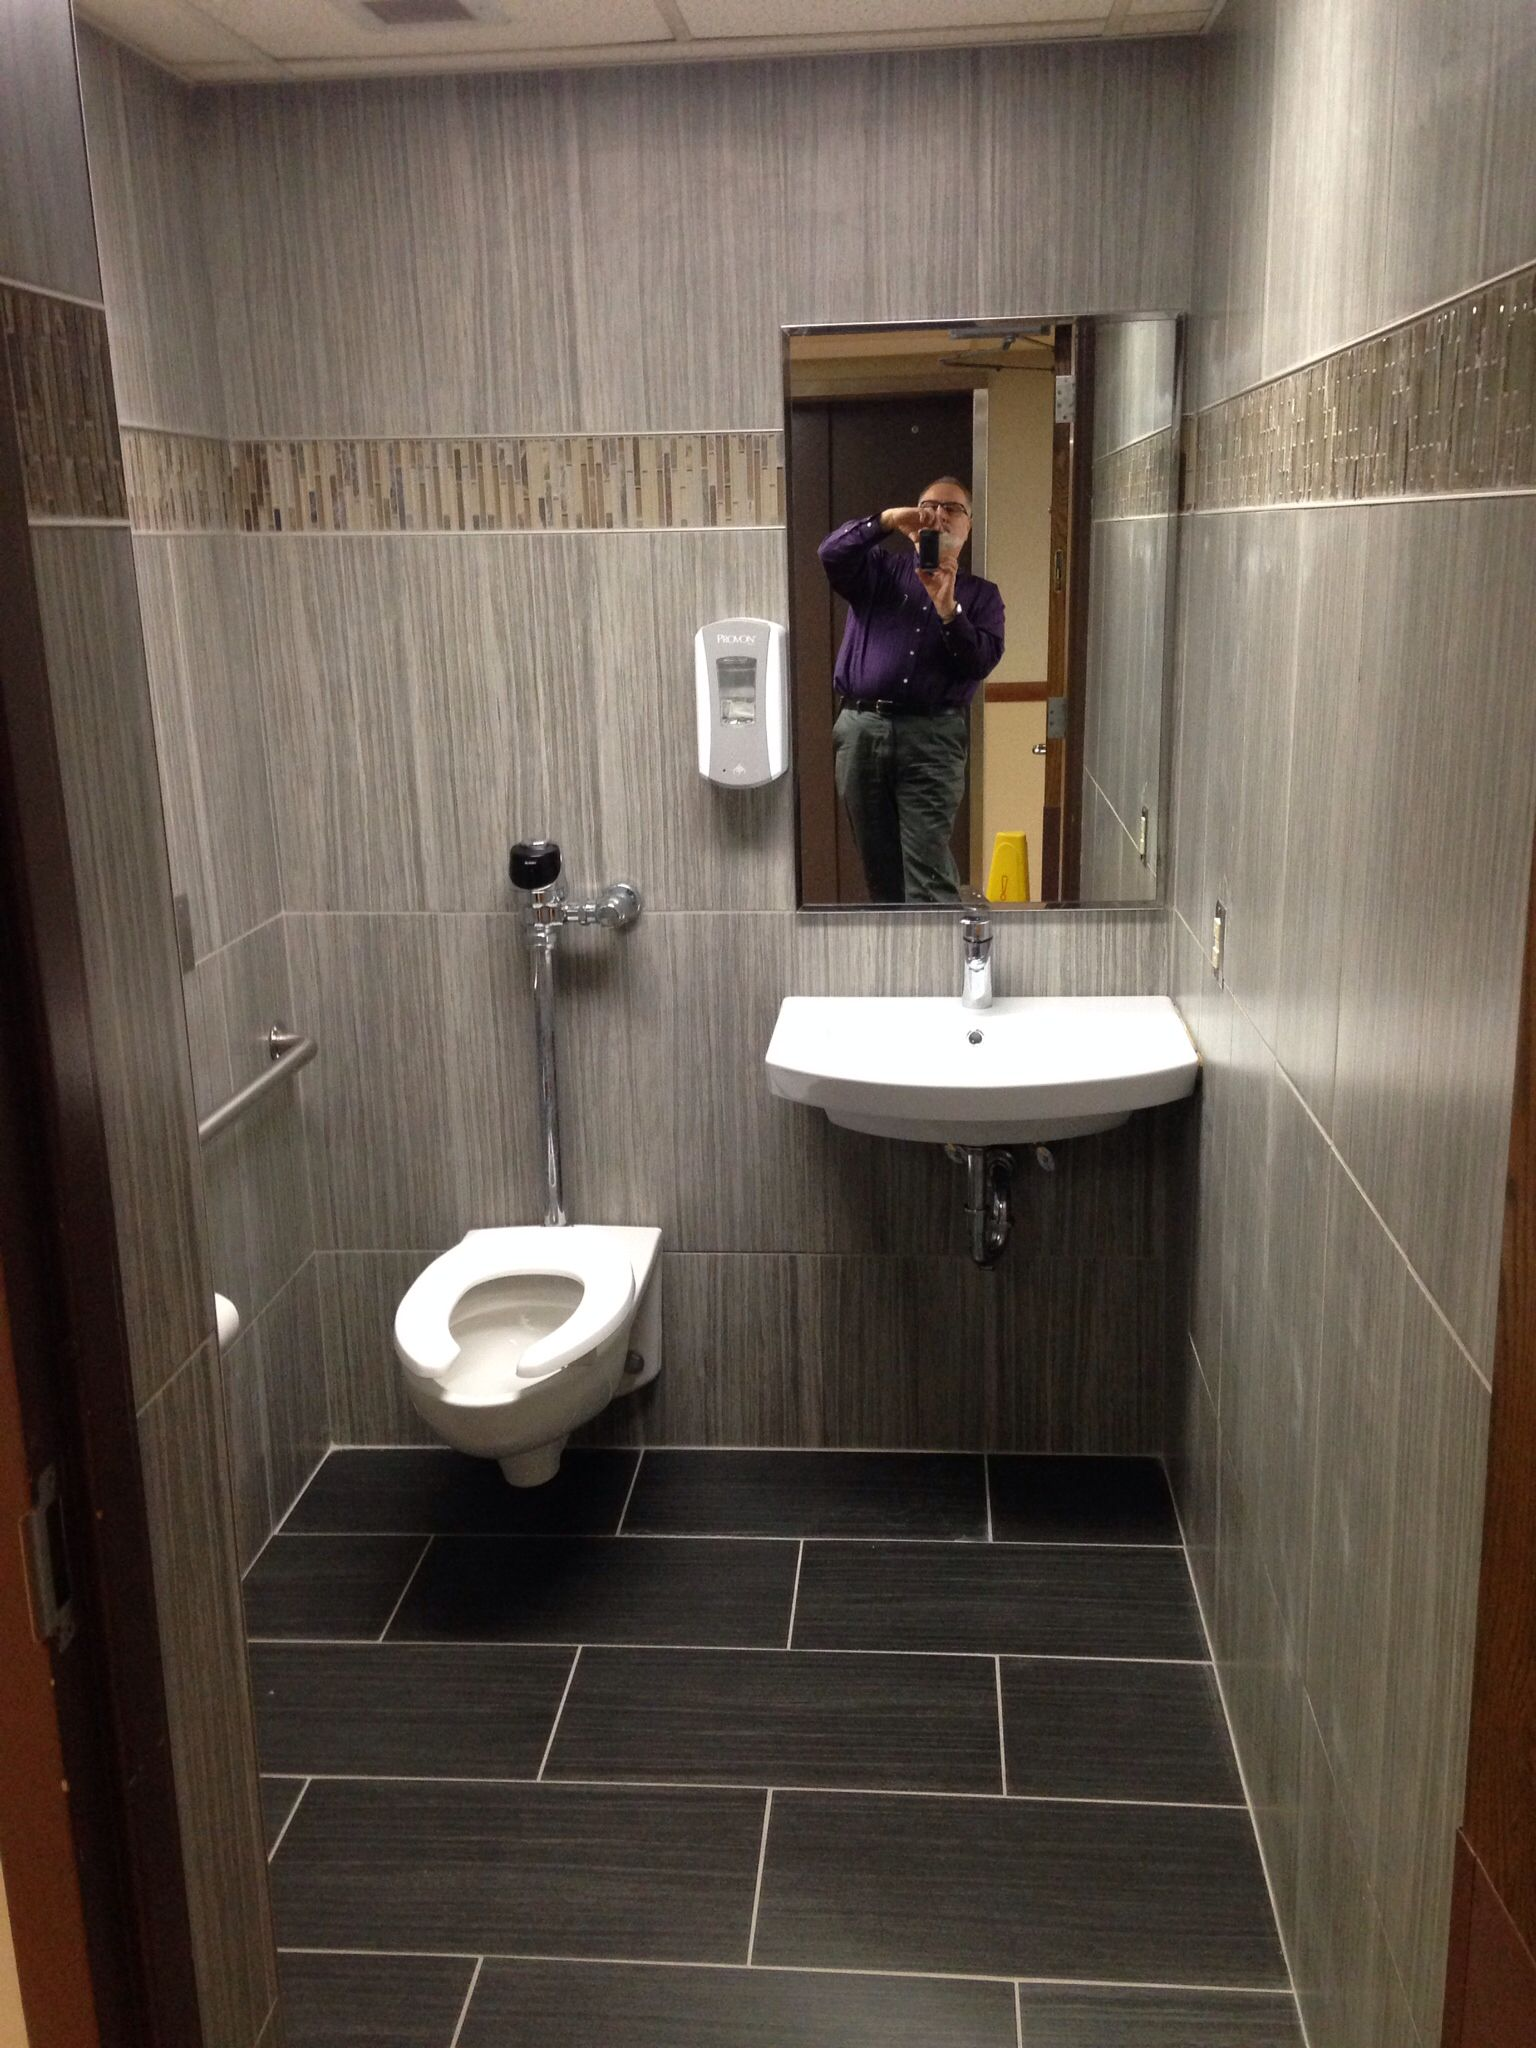 Public restroom retile remodel after picture design for Restroom renovation ideas